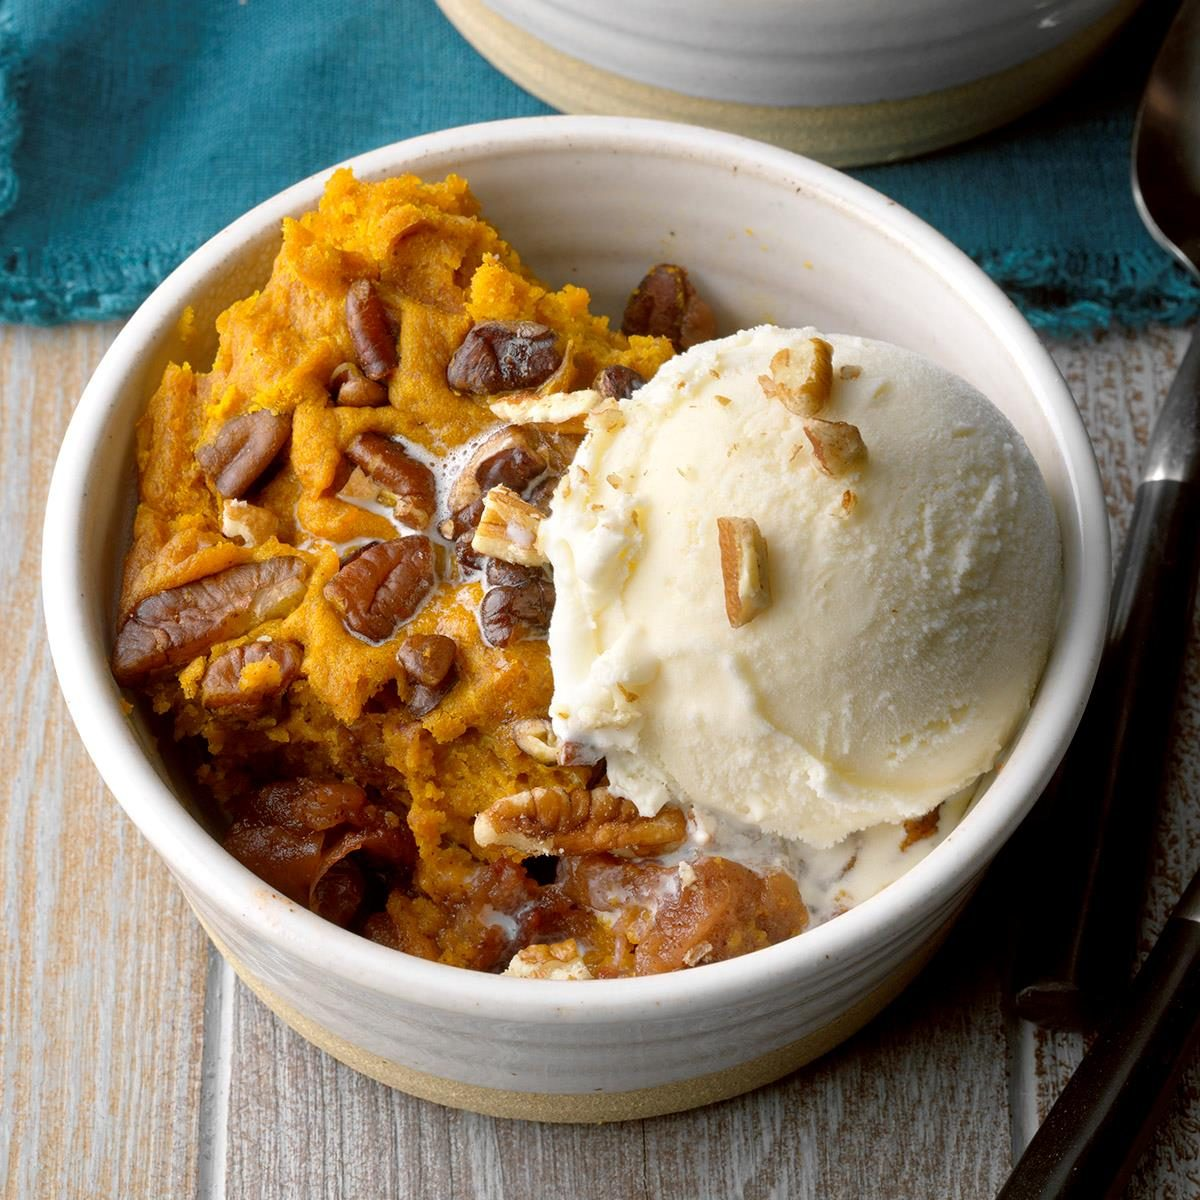 Day 25: Slow-Cooked Pumpkin Apple Cobbler